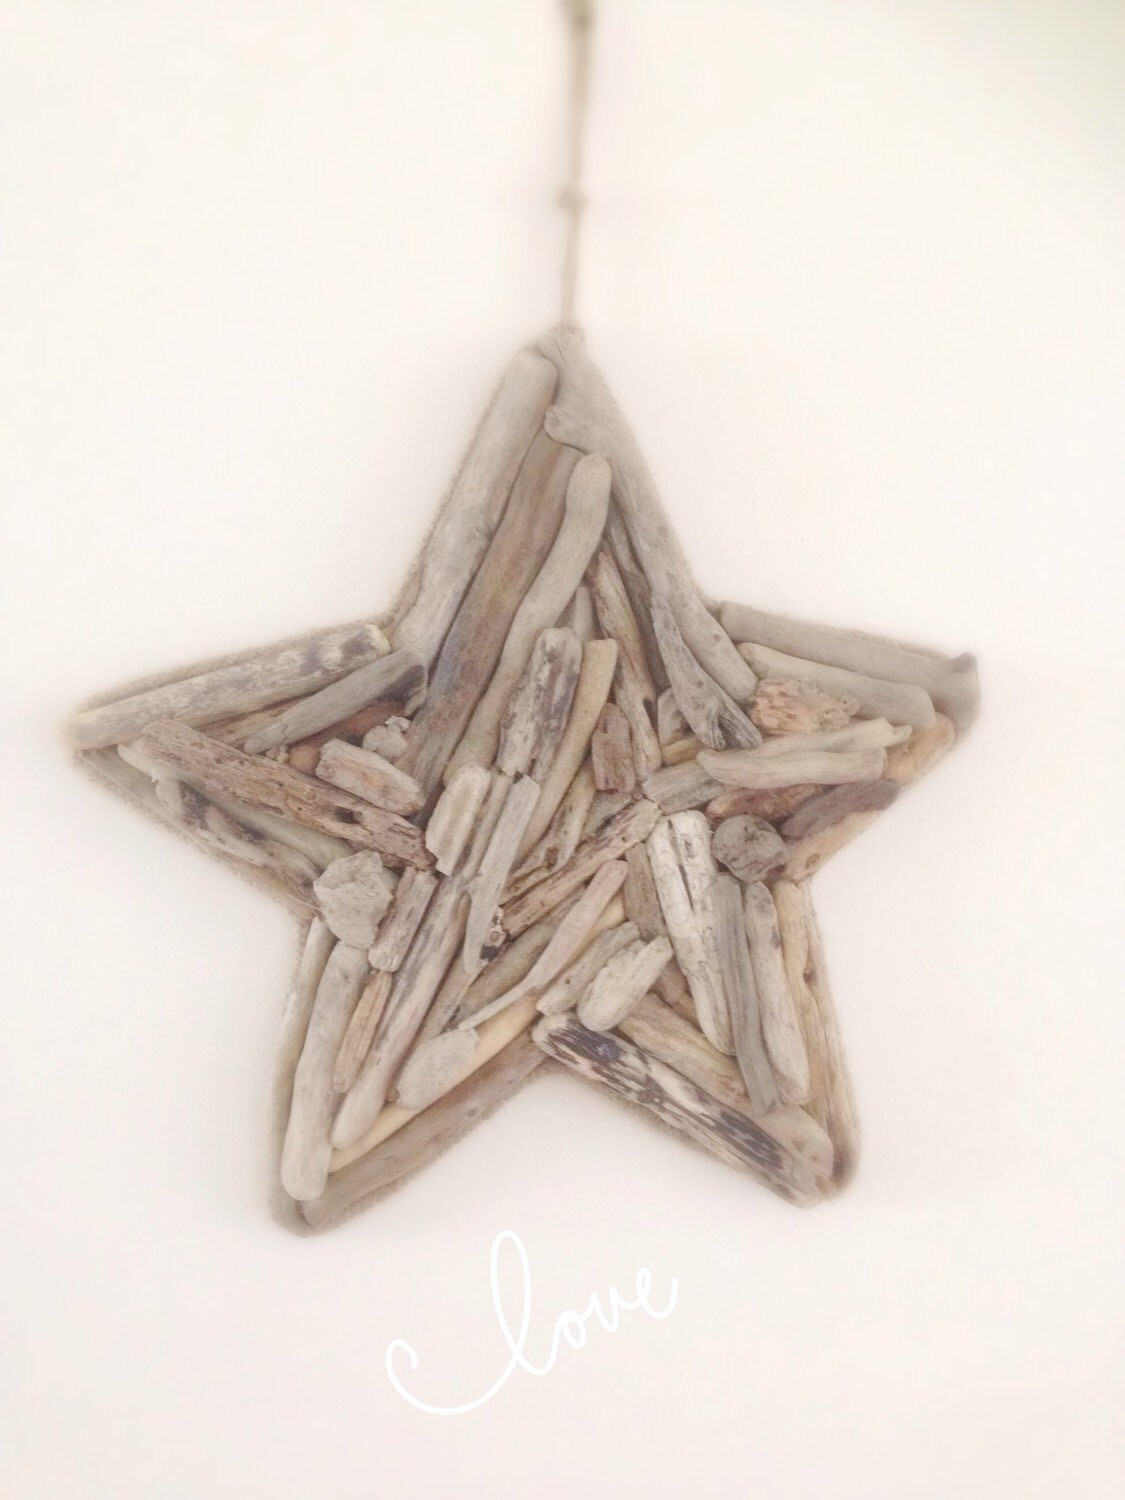 Driftwood Star Wall Art Large Wall Hanging Beach Décor ...